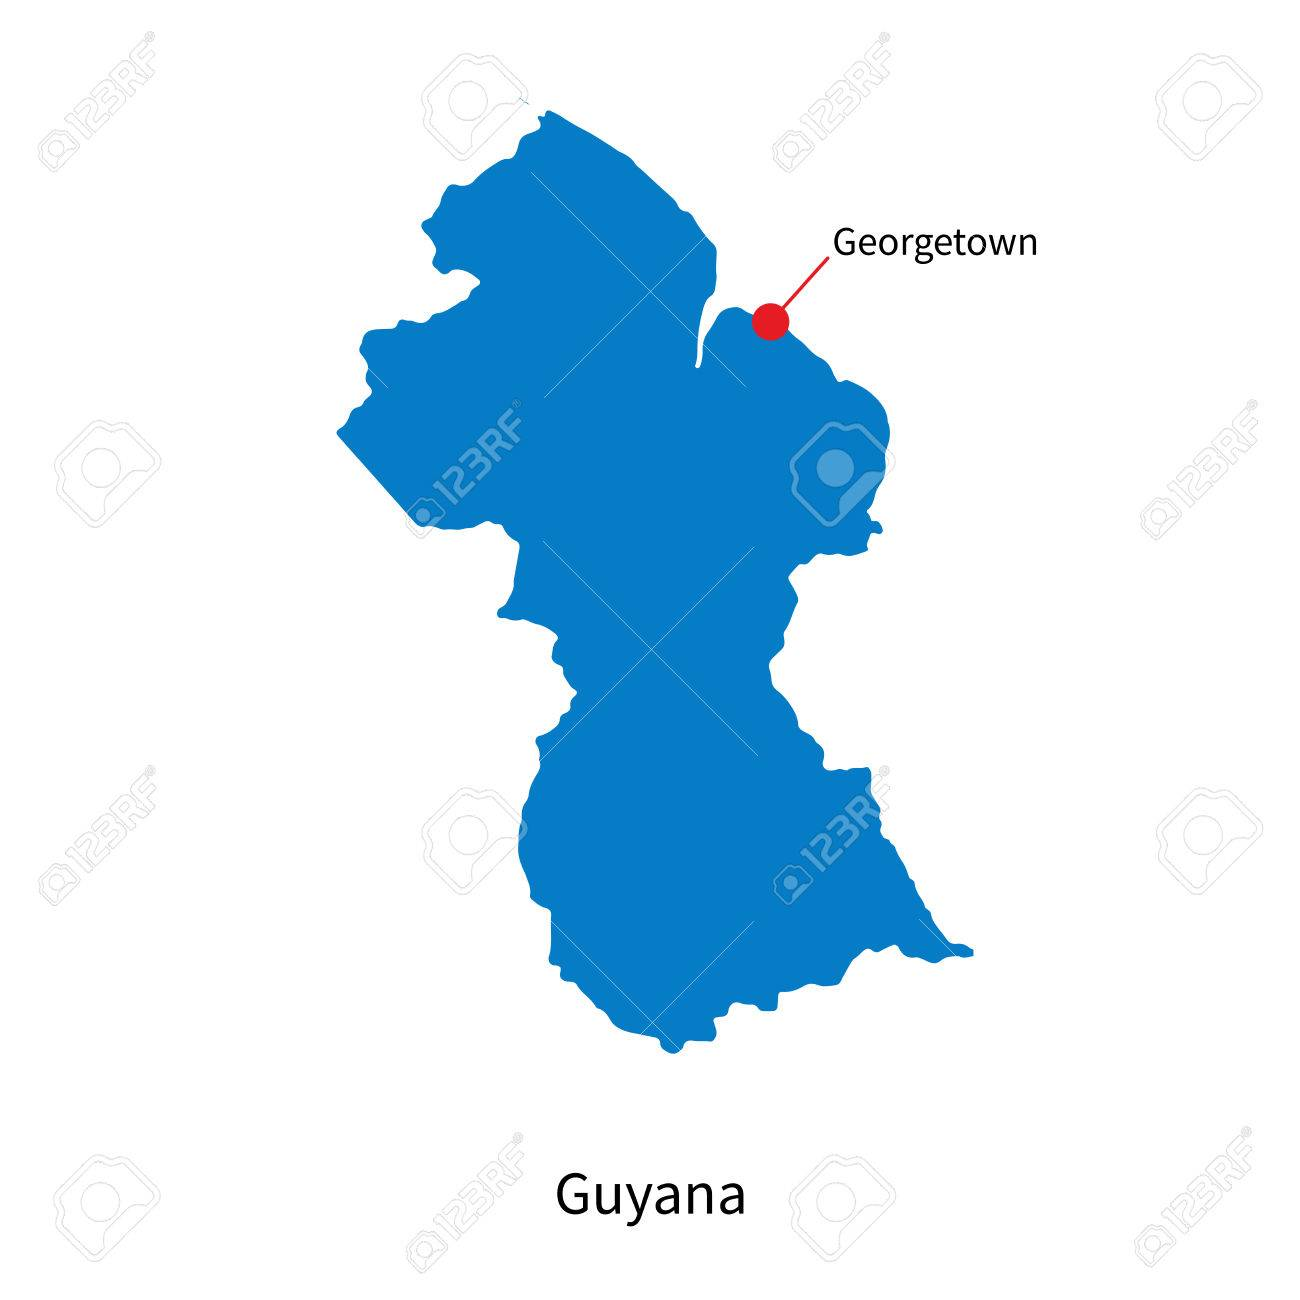 Detailed Map Of Guyana And Capital City Georgetown Royalty Free